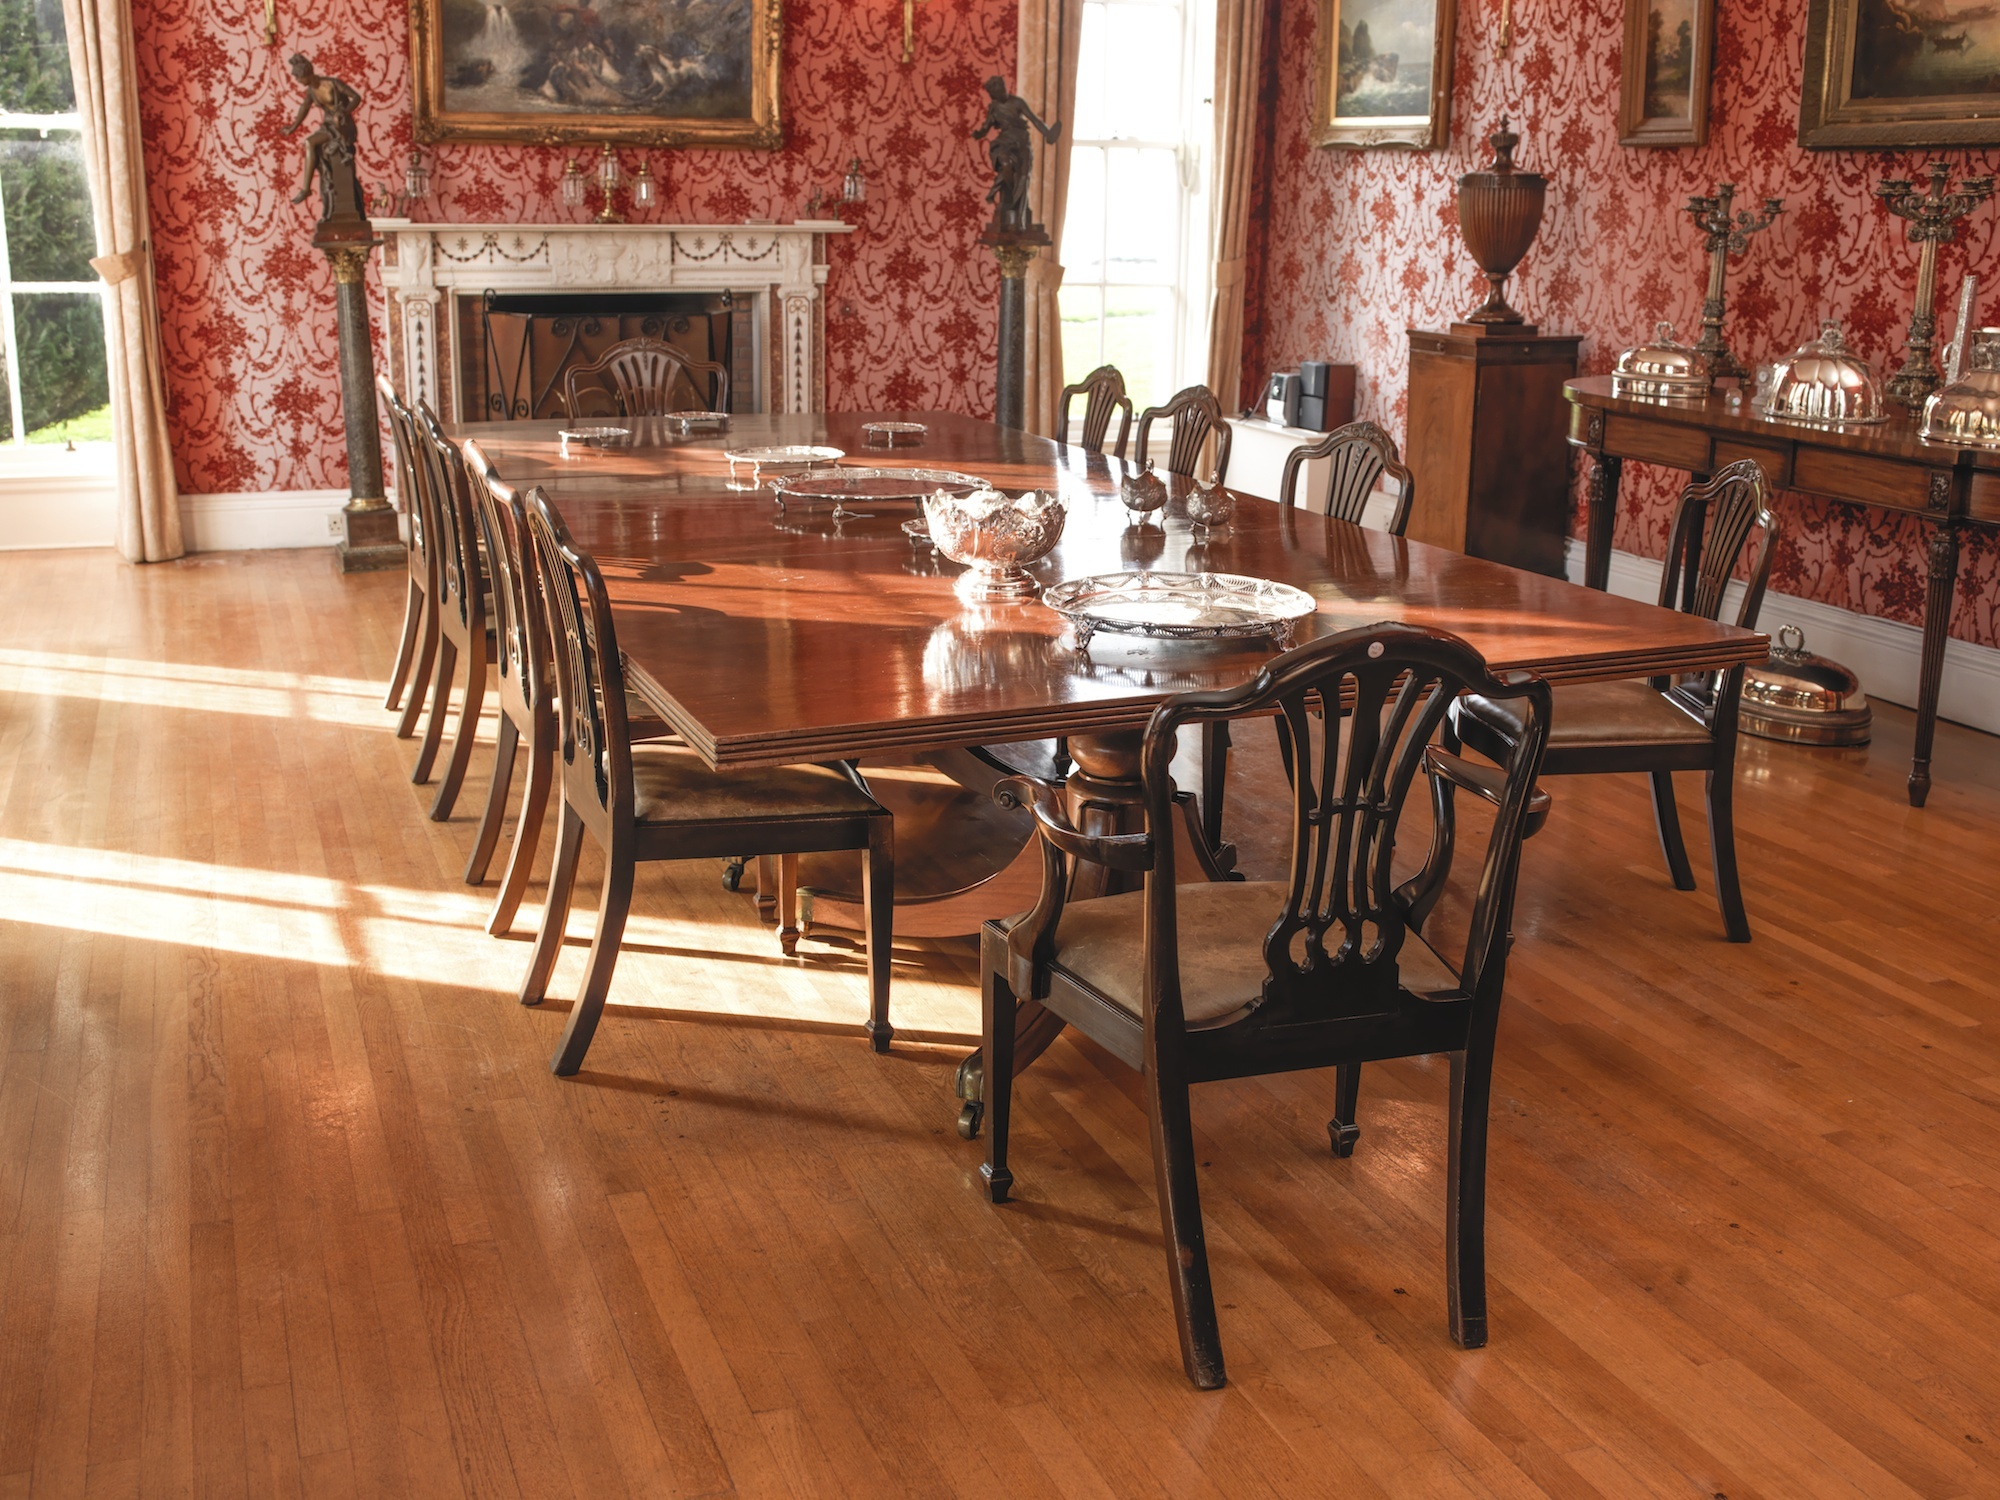 Impressive dining table at courtown house auction an irish george iv mahogany rectangular dining table attributed to gillingtons of dublin dzzzfo